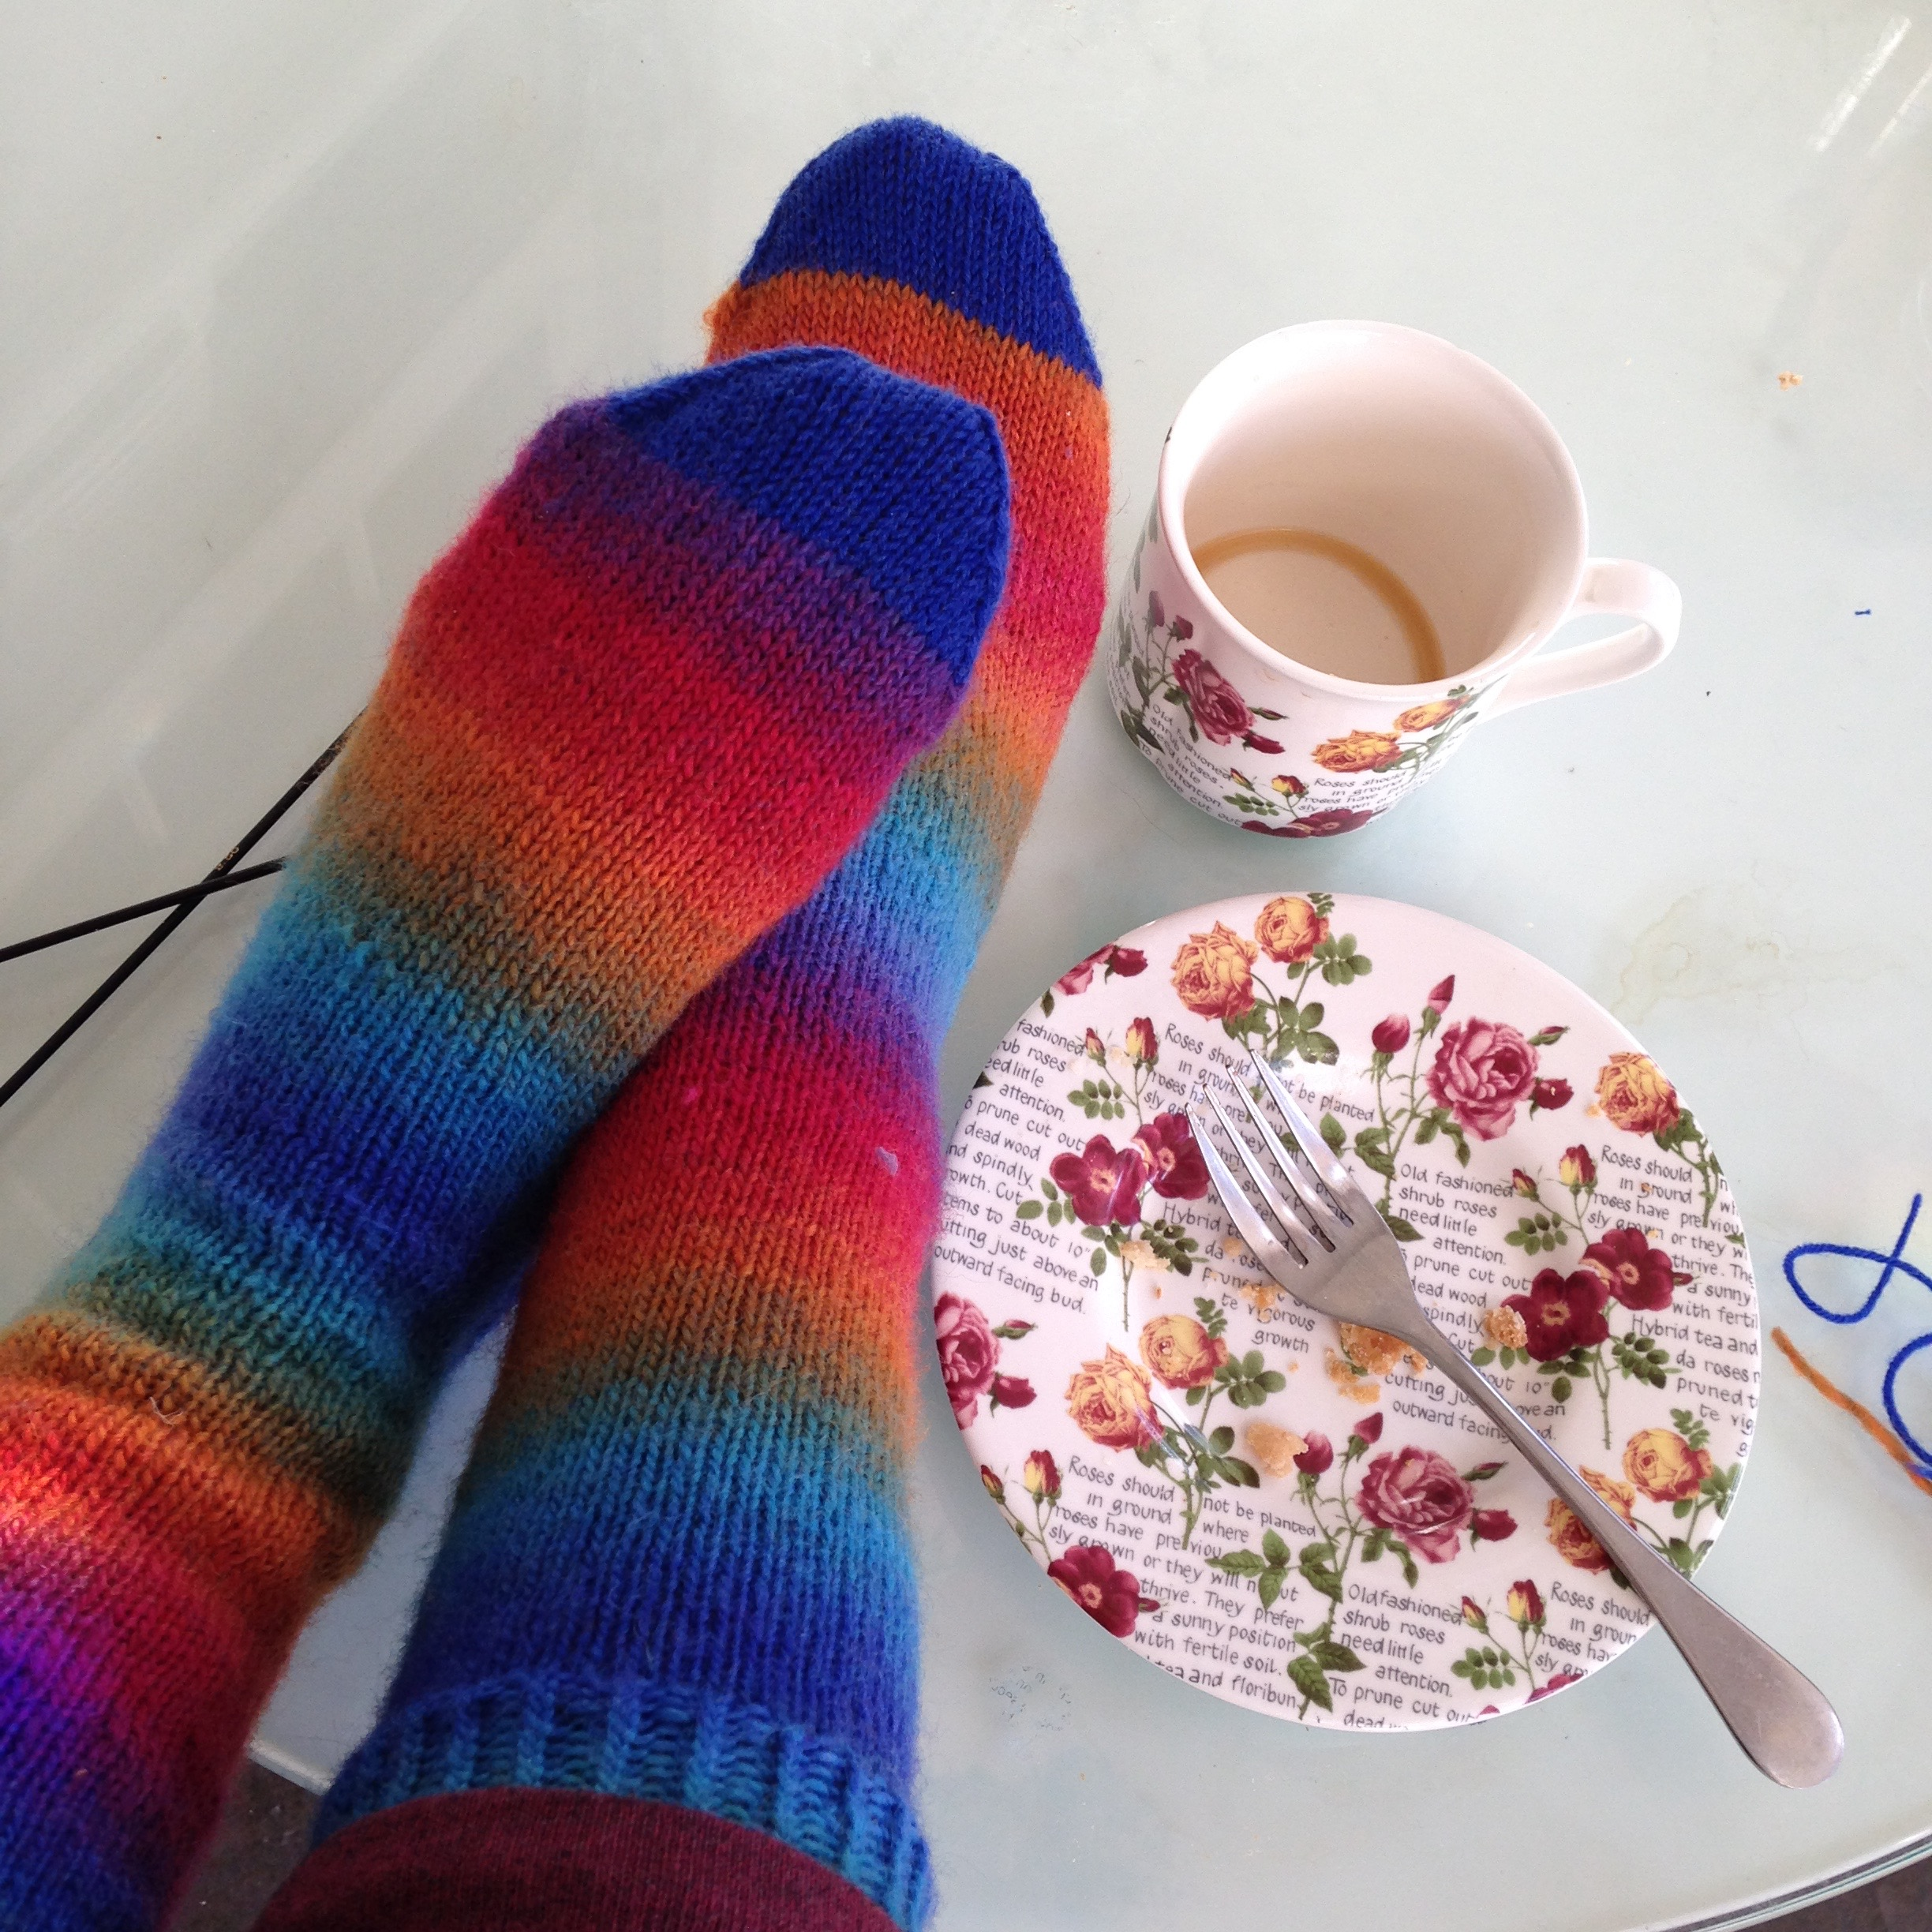 By the time I'd drained my coffee, the toe was done and I had a new pair of socks.